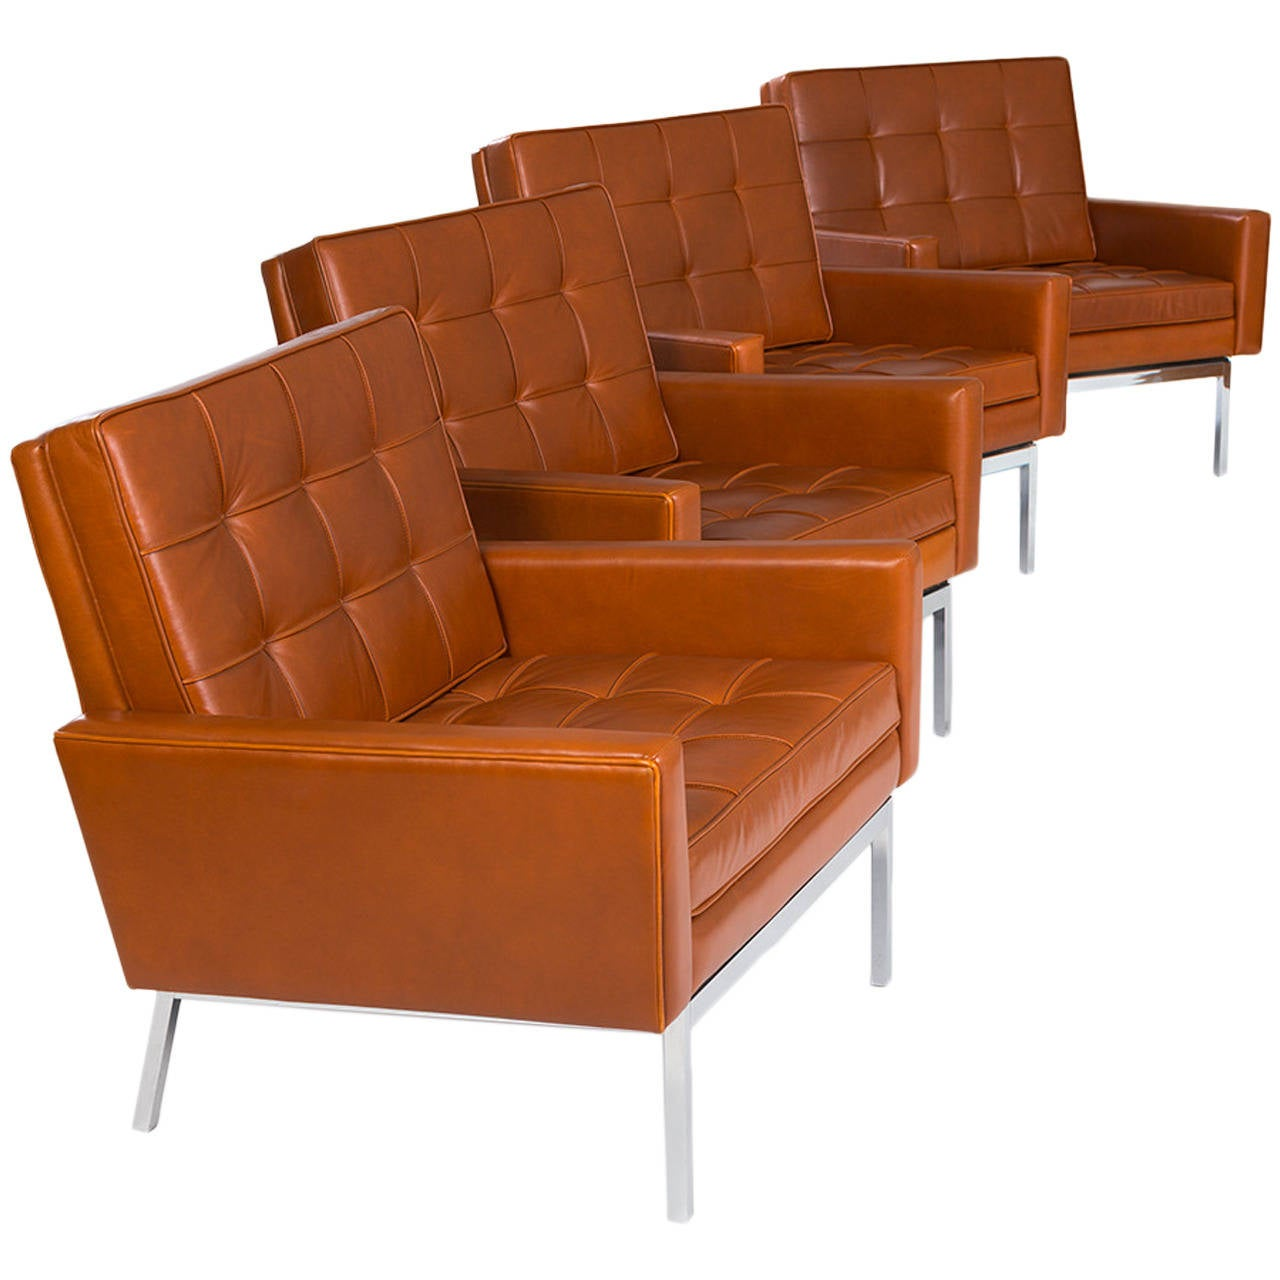 Florence Knoll Chairs, Set of Four Model 65A, 1960s For Sale